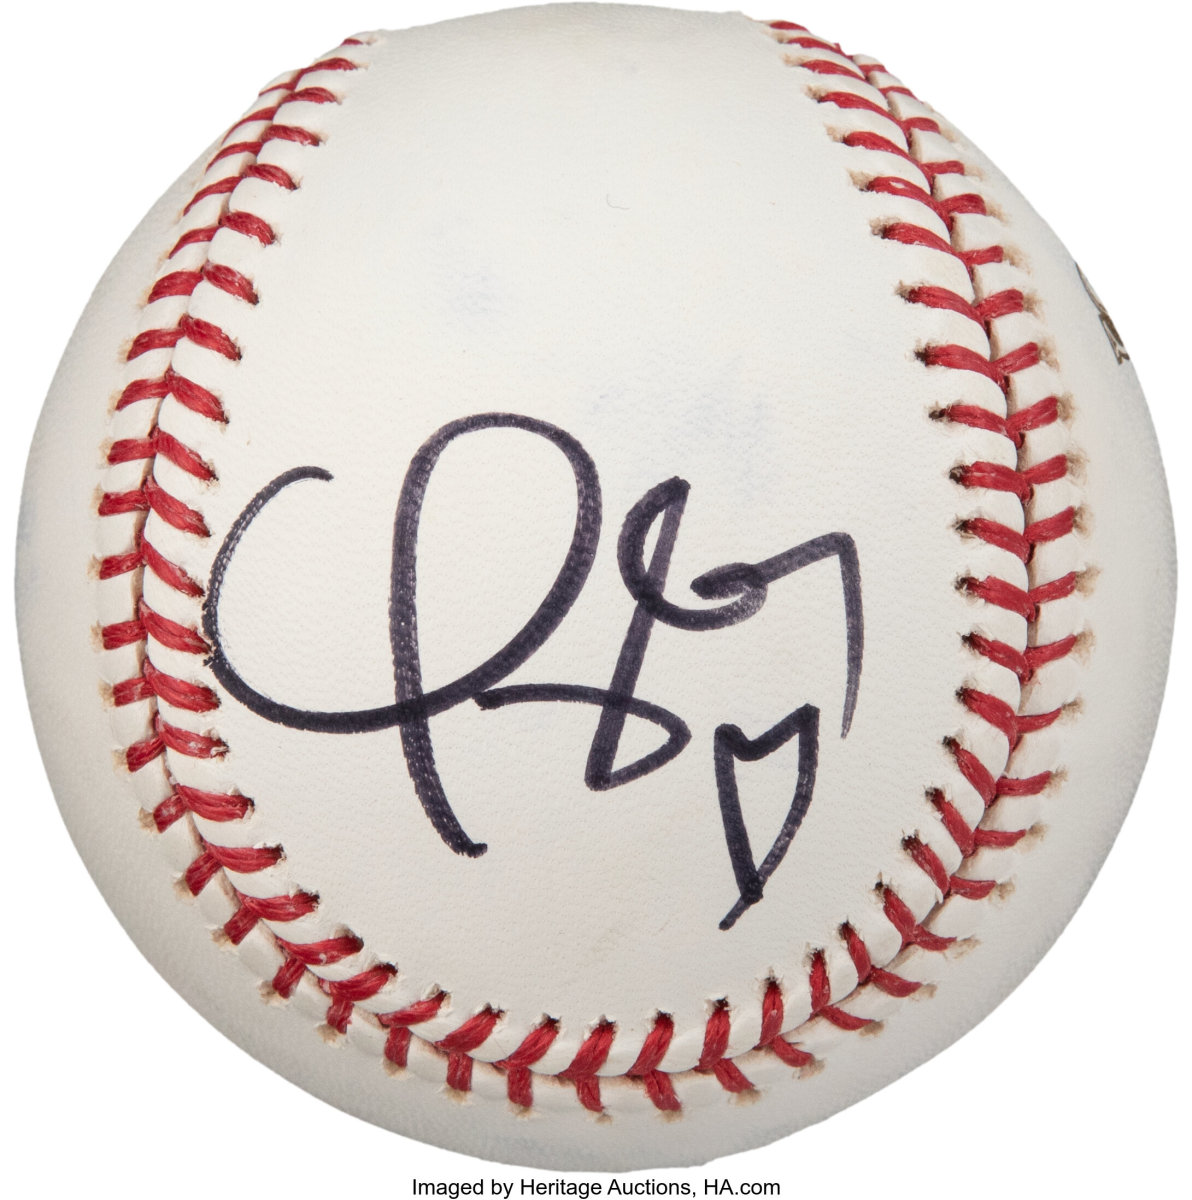 2008 World Series ball signed by Taylor Swift.